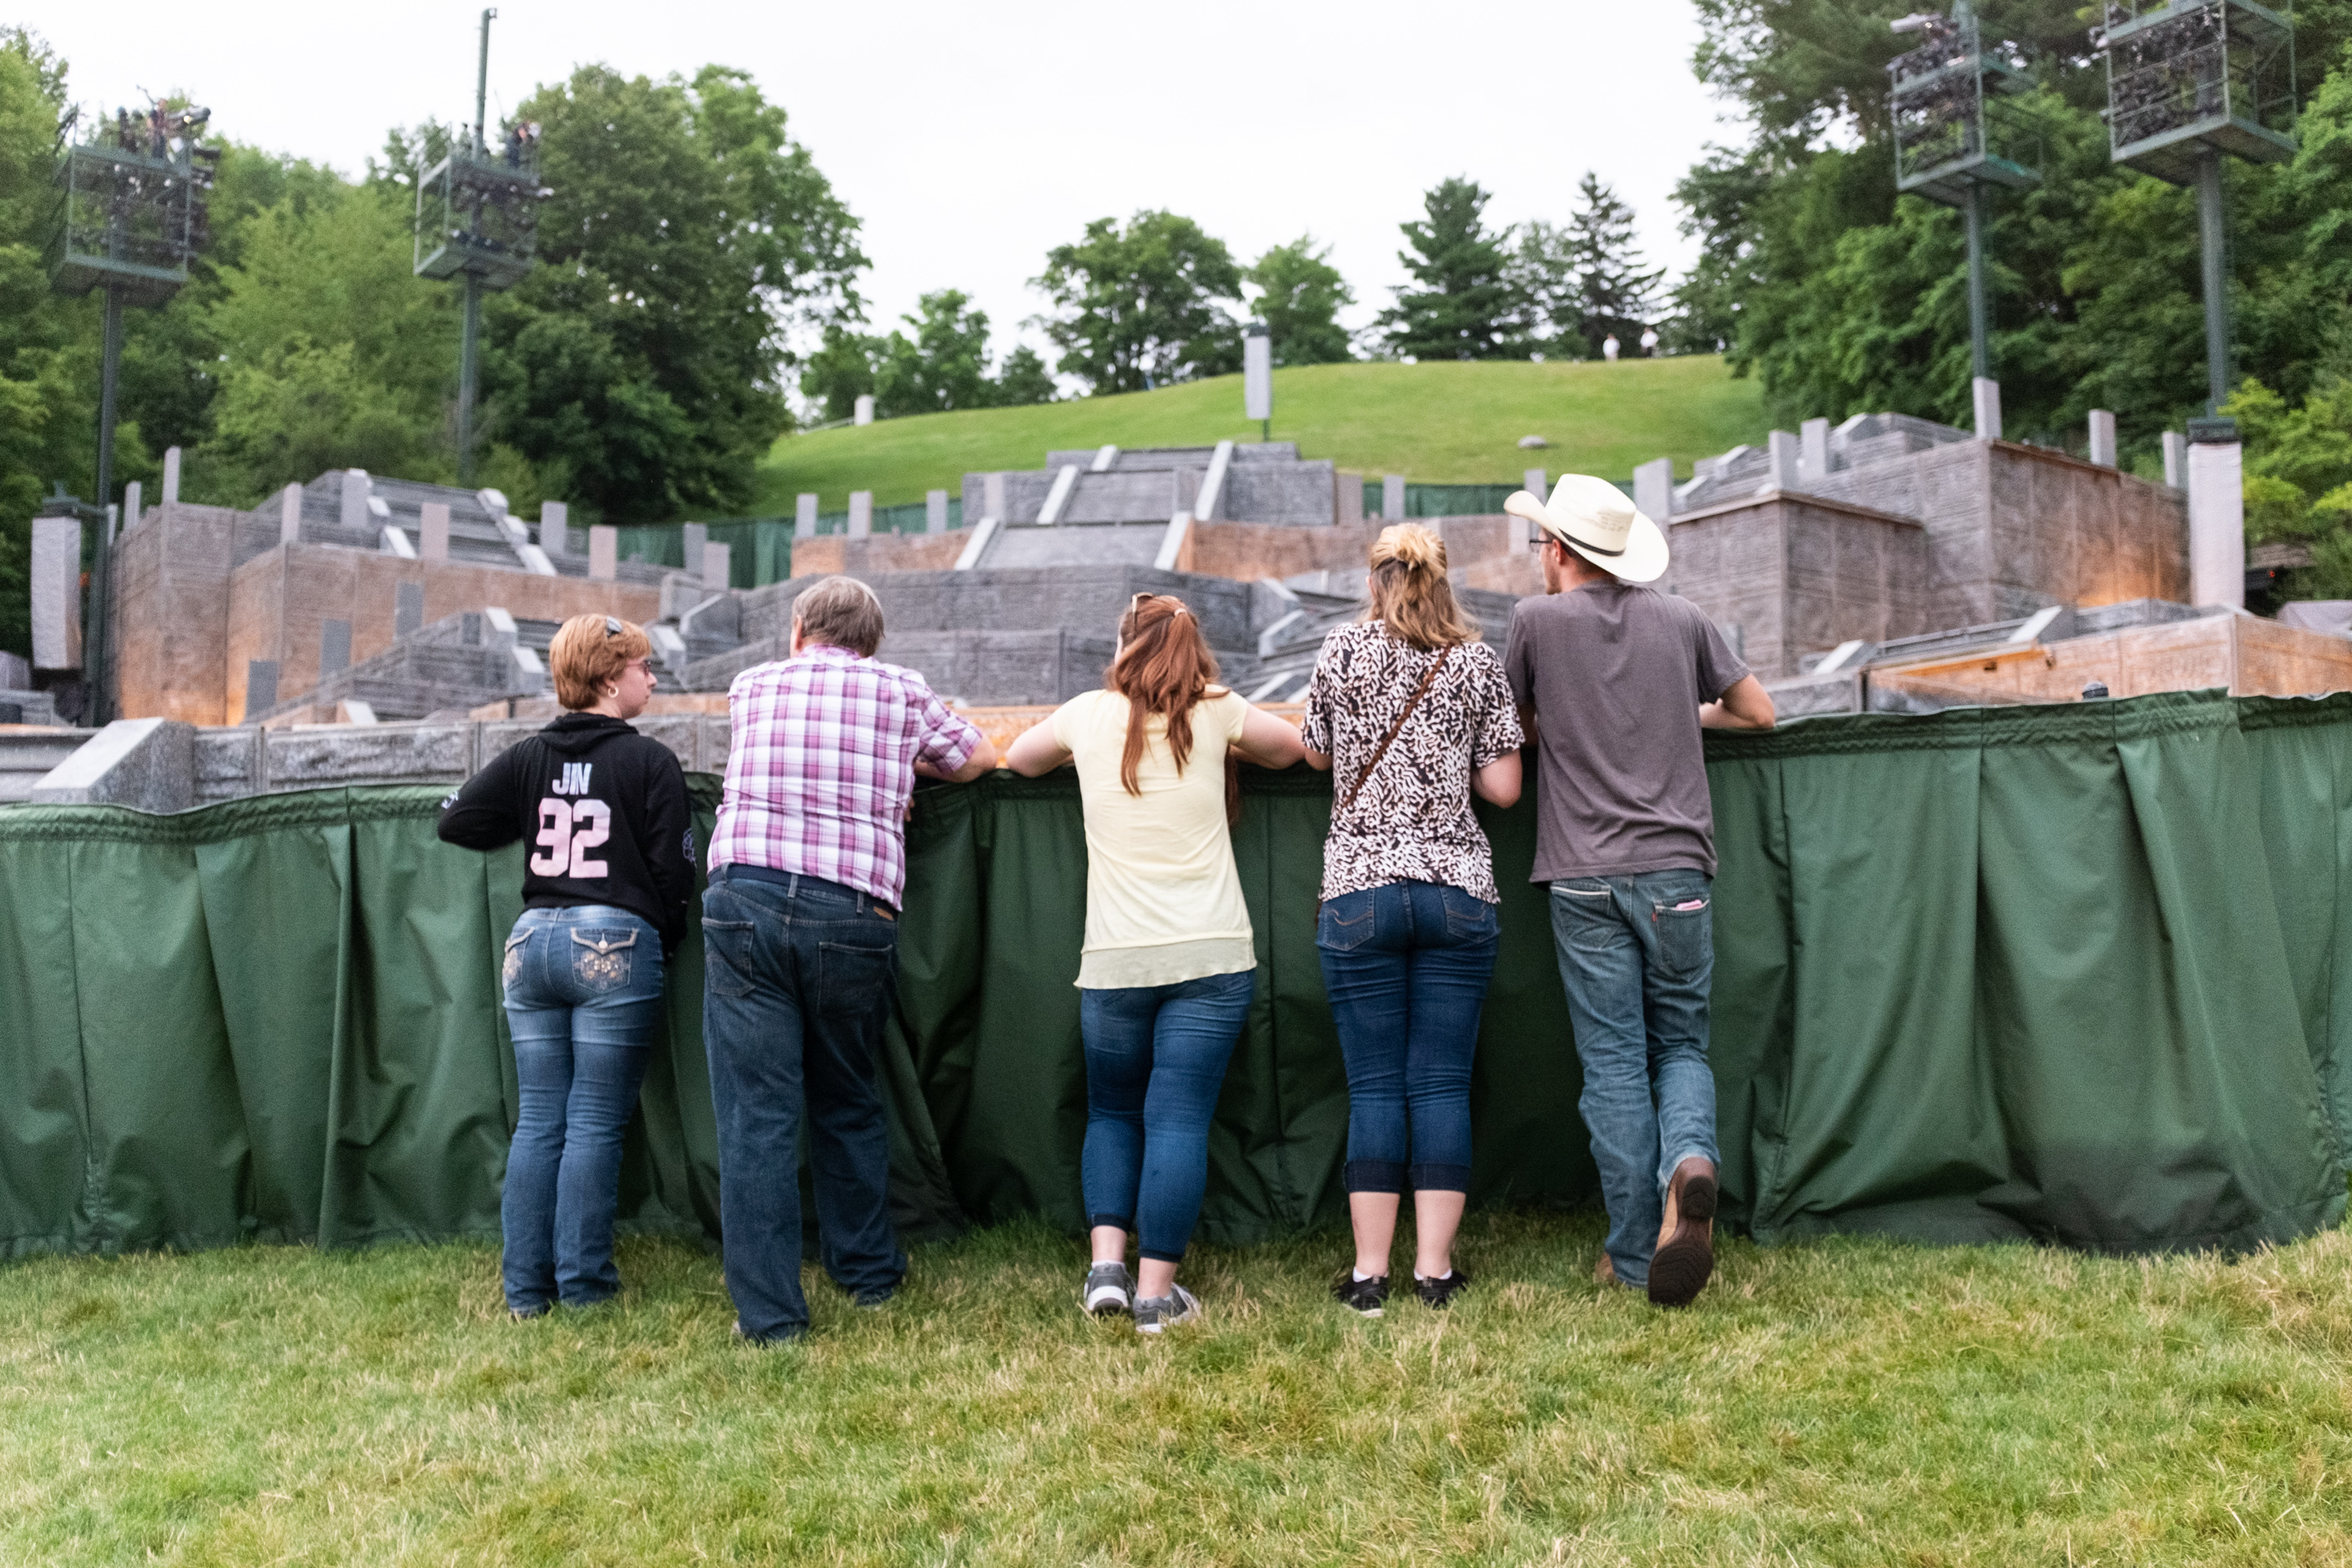 Visitors overlook stage for Hill Cumorah Pagaent before the evening show, Palmyra, NY, 2019